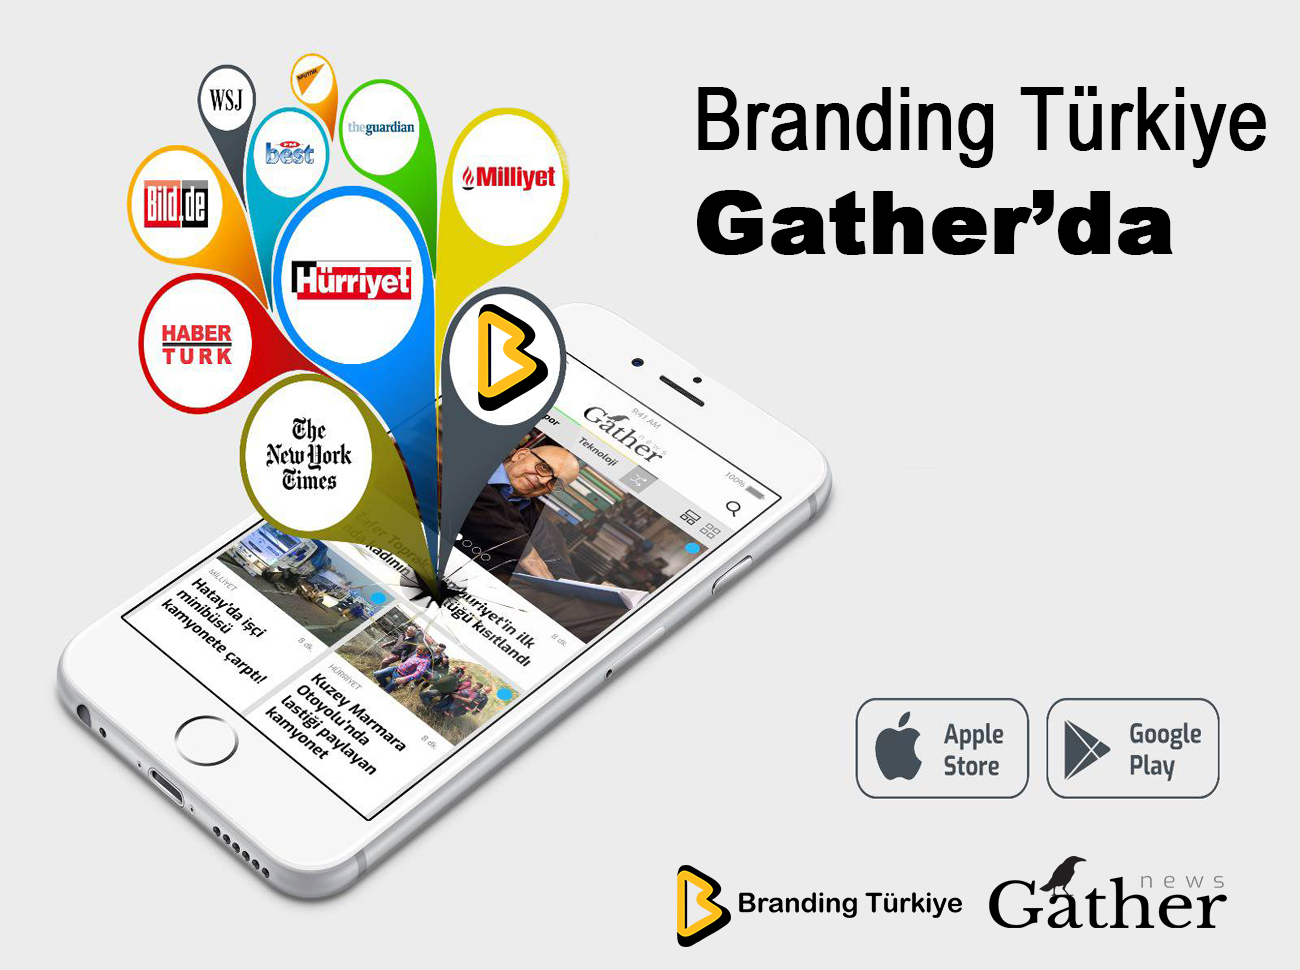 Branding Türkiye Gather'da